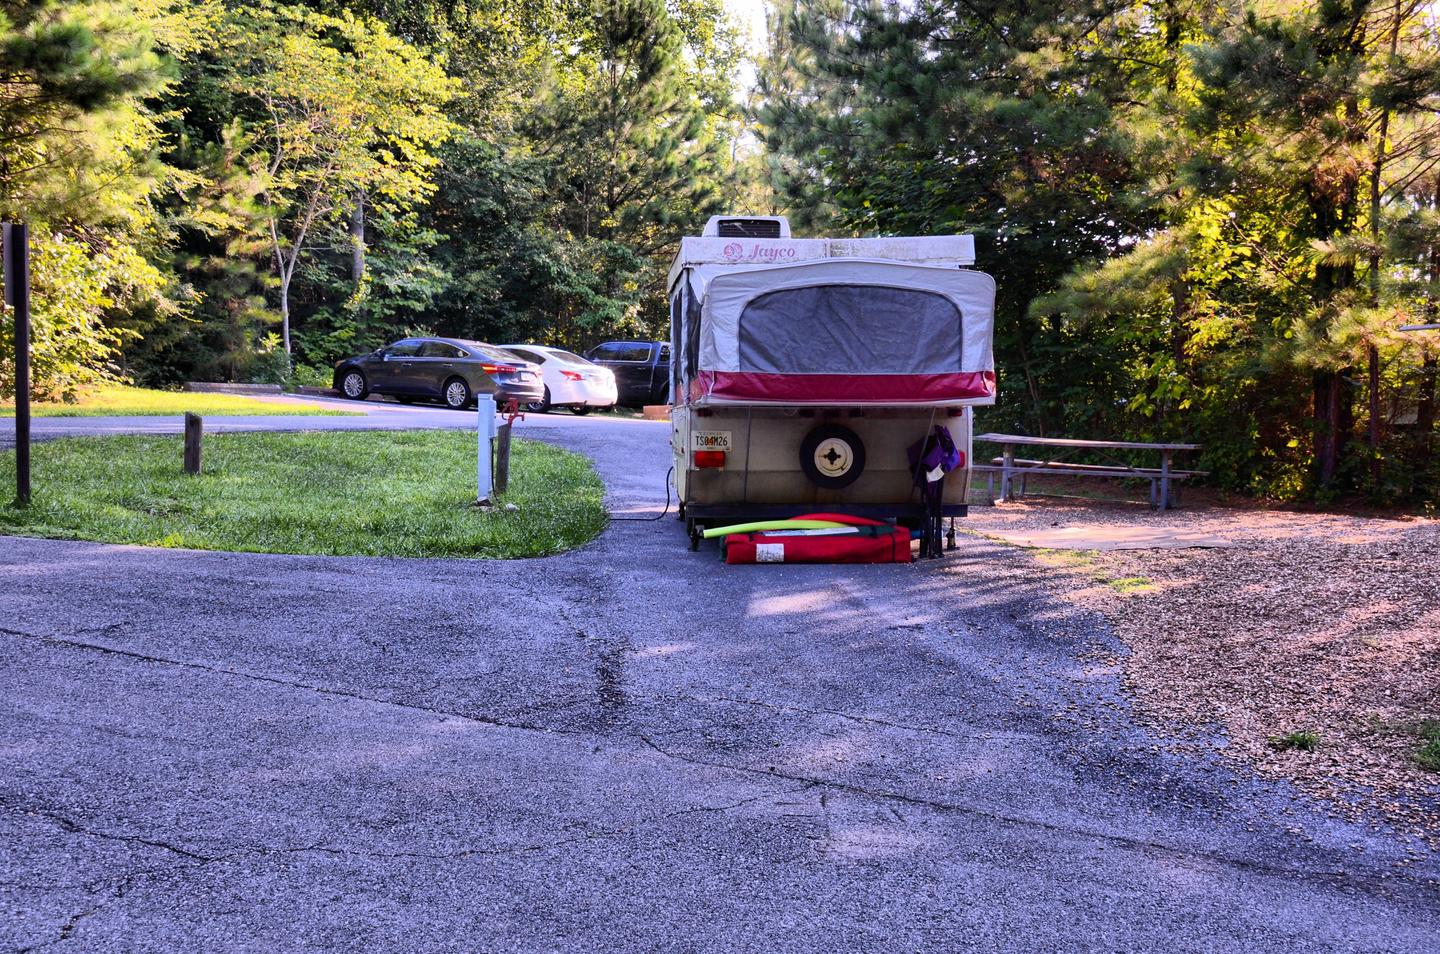 utilities-side clearance, awning-side clearance.Payne Campground, campsite 001